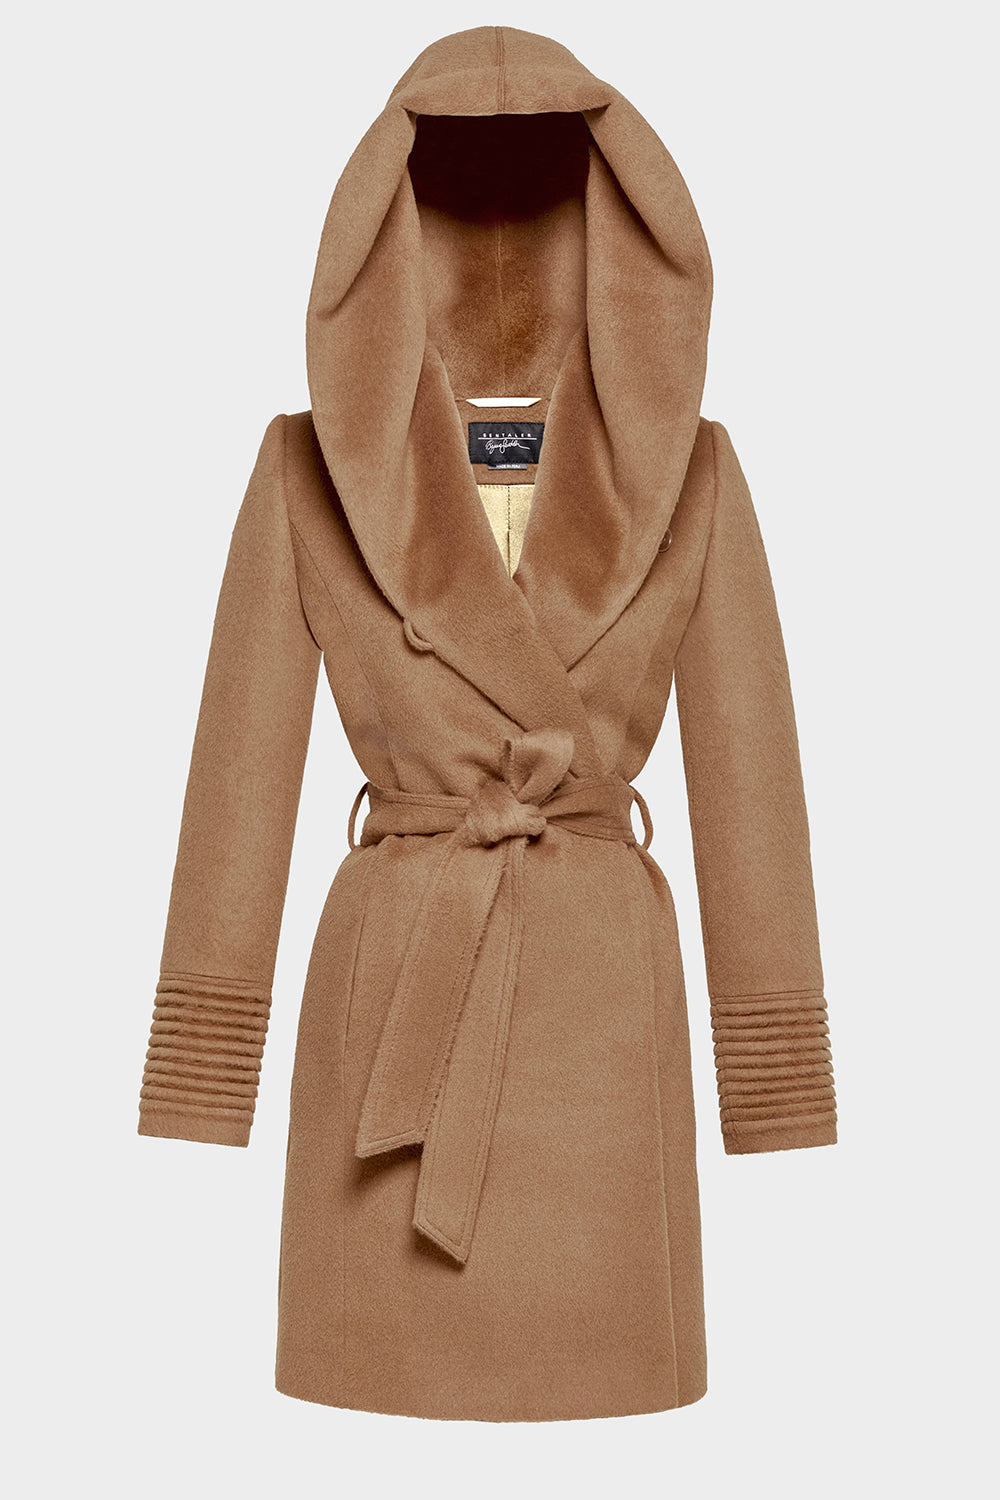 Sentaler Mid Length Hooded Wrap Coat featured in Baby Alpaca and available in Dark Camel. Seen off model.